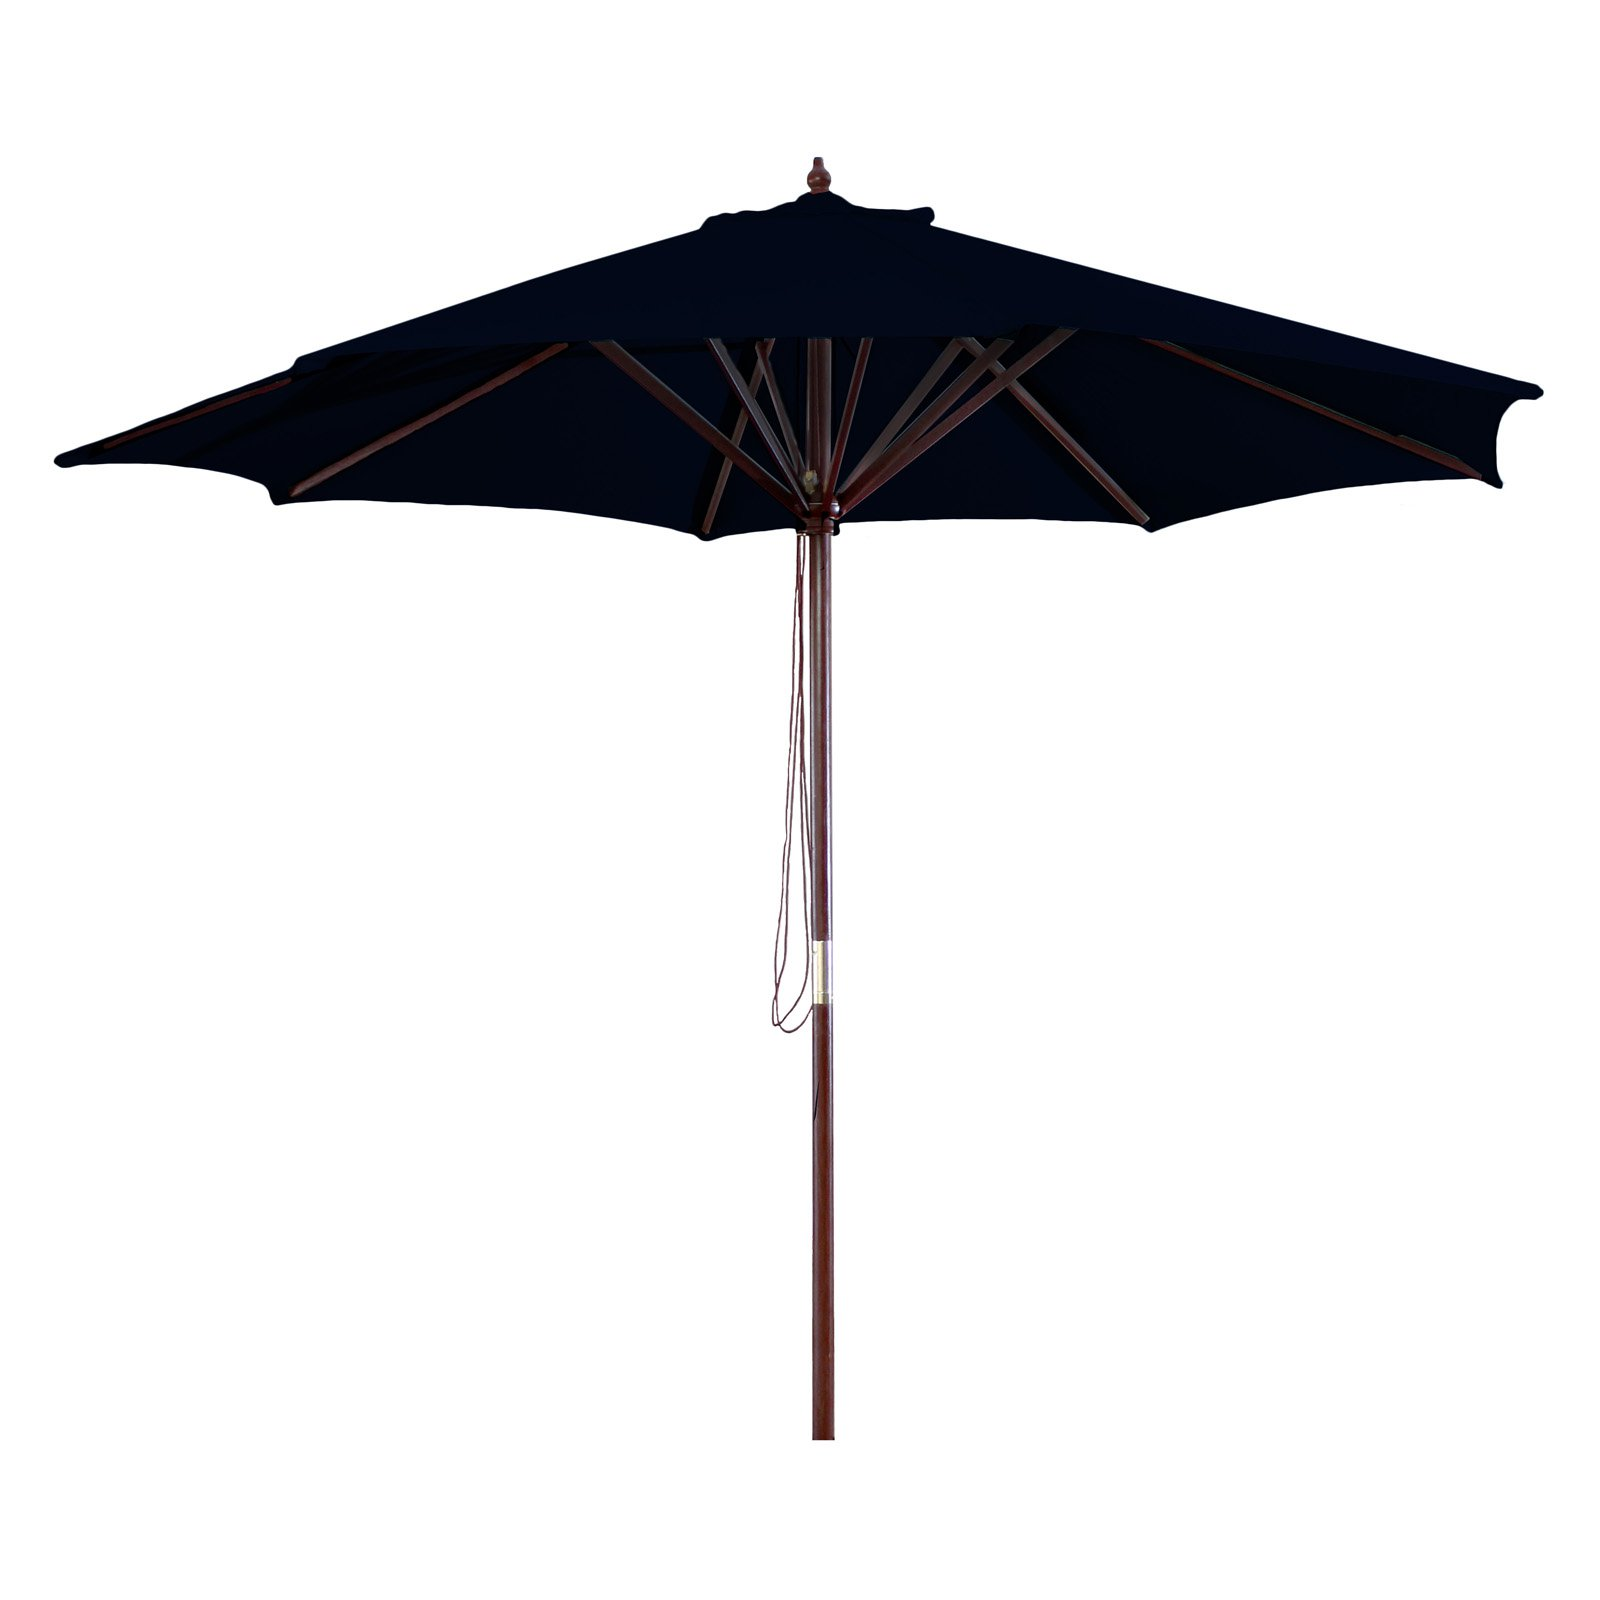 9' Wood Market Umbrella, Multiple Colors by Jordan Manufacturing